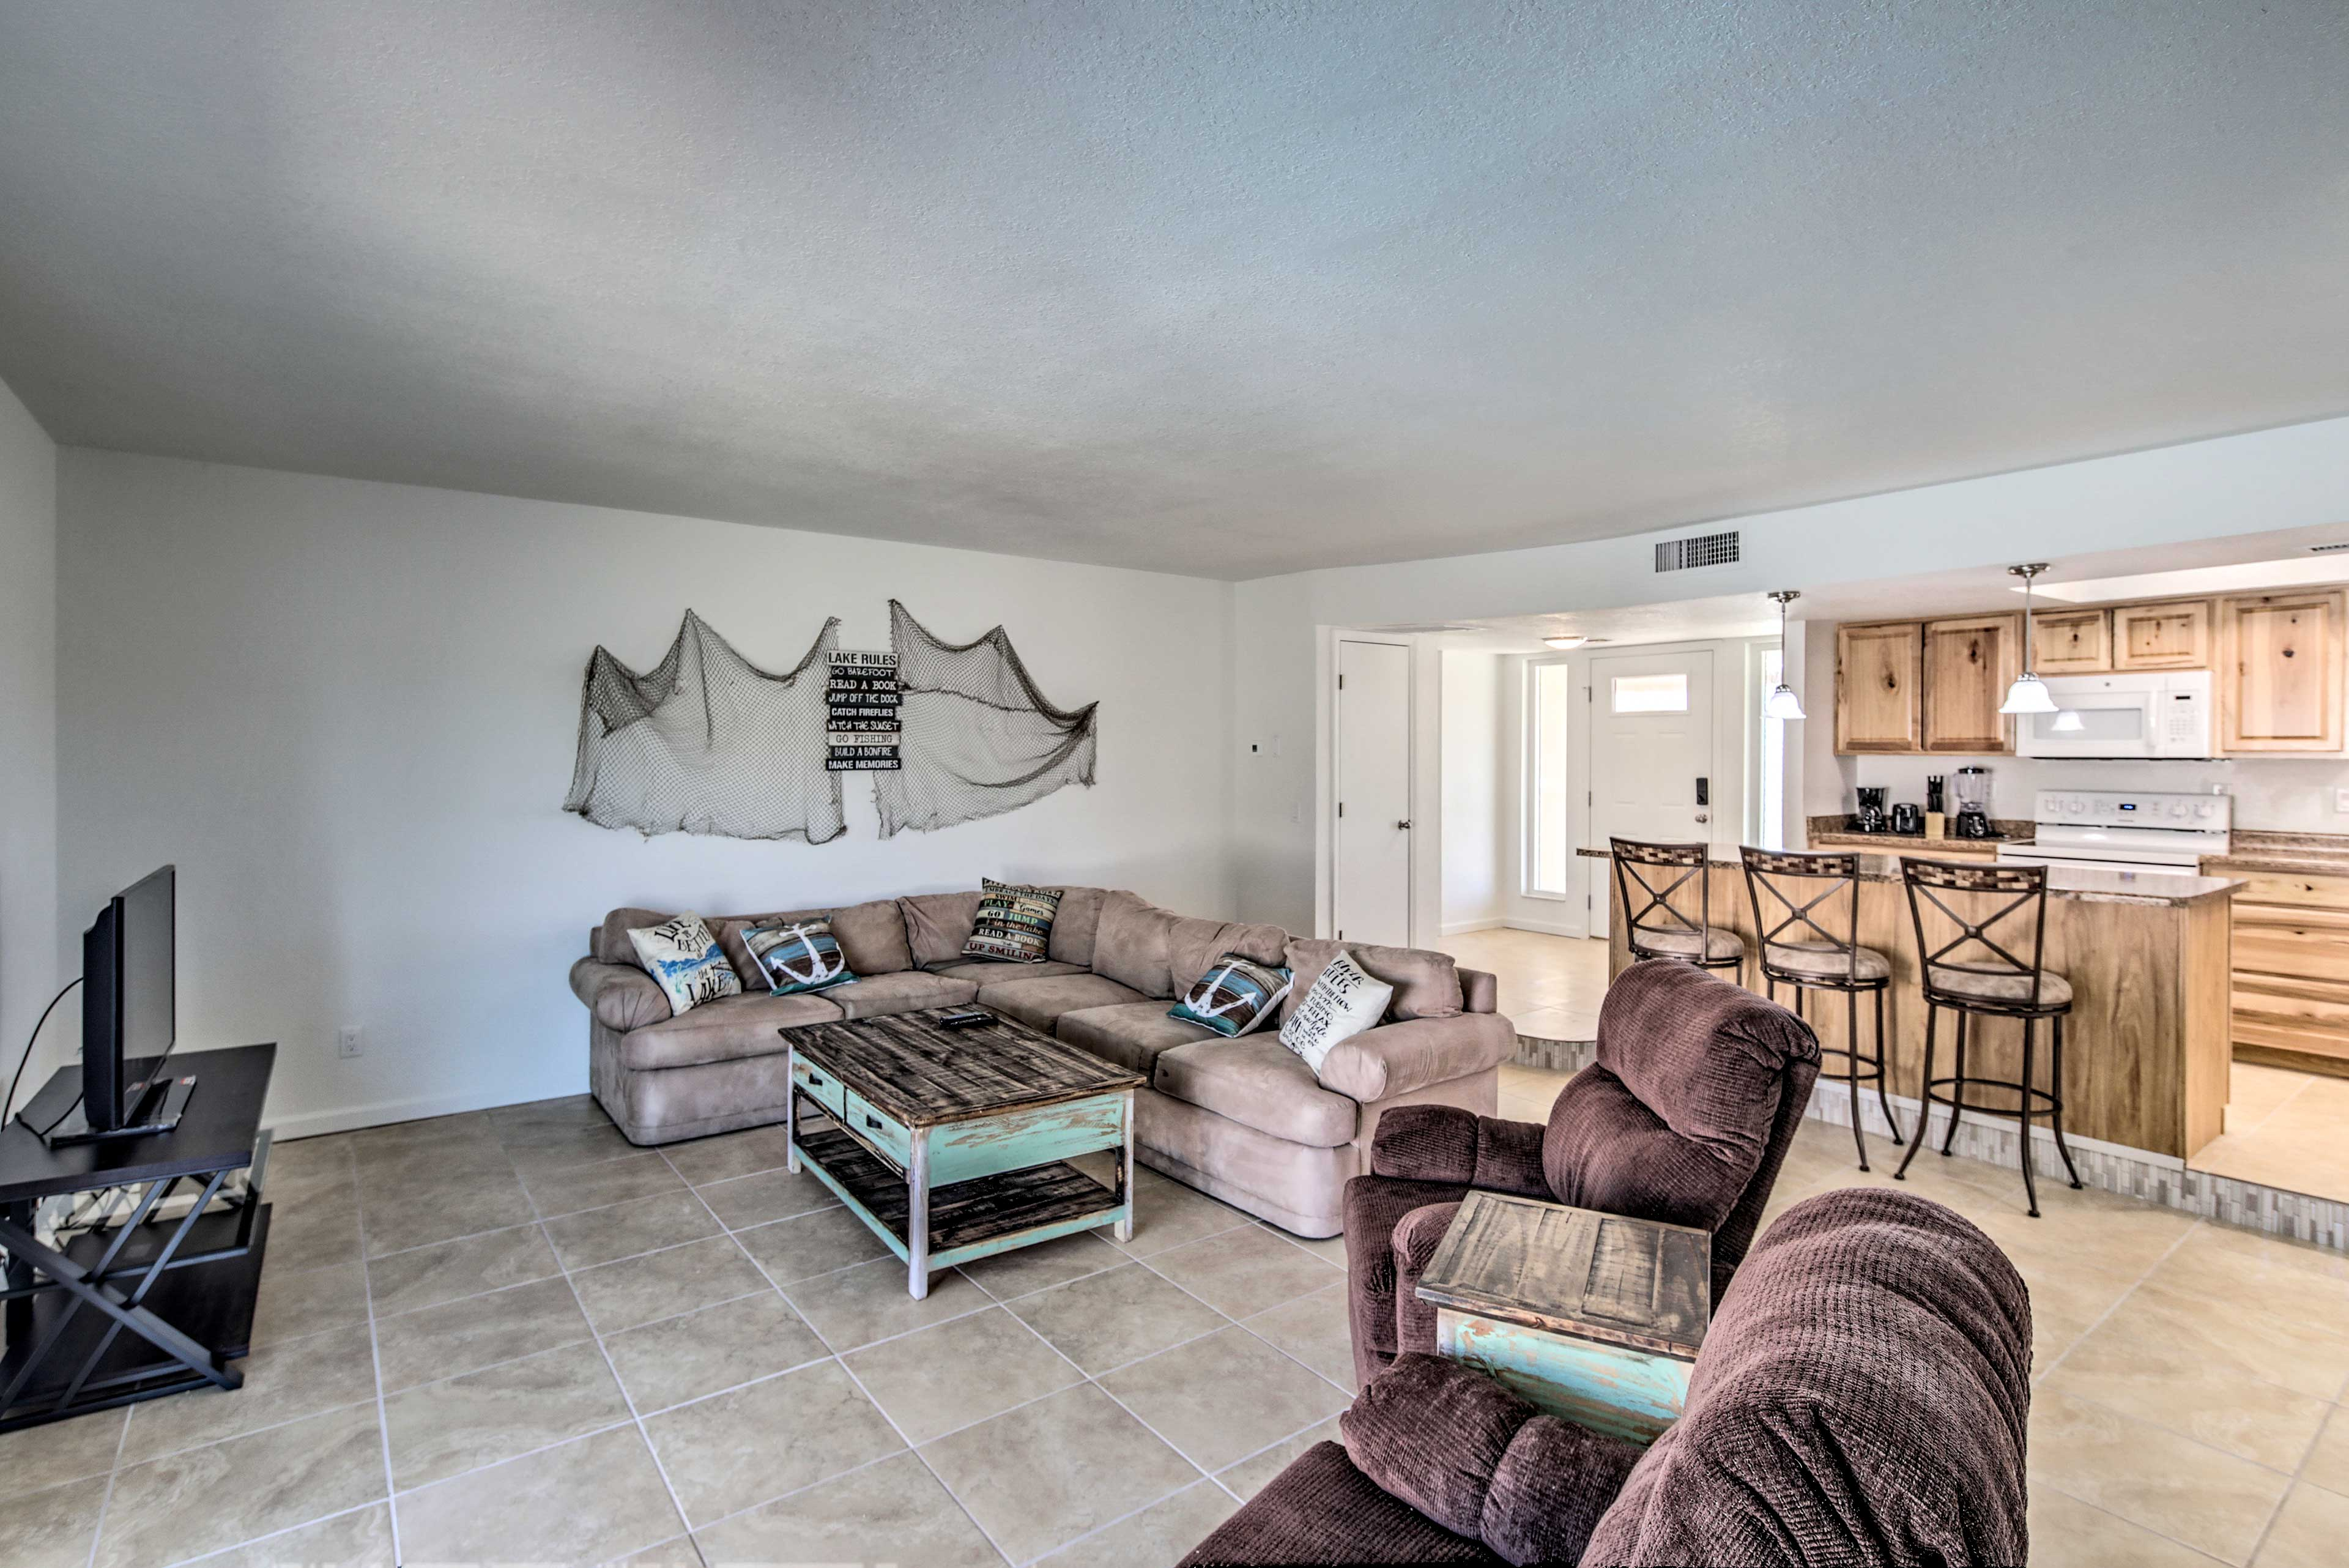 Up to 10 guests can stay in this comfortable home.